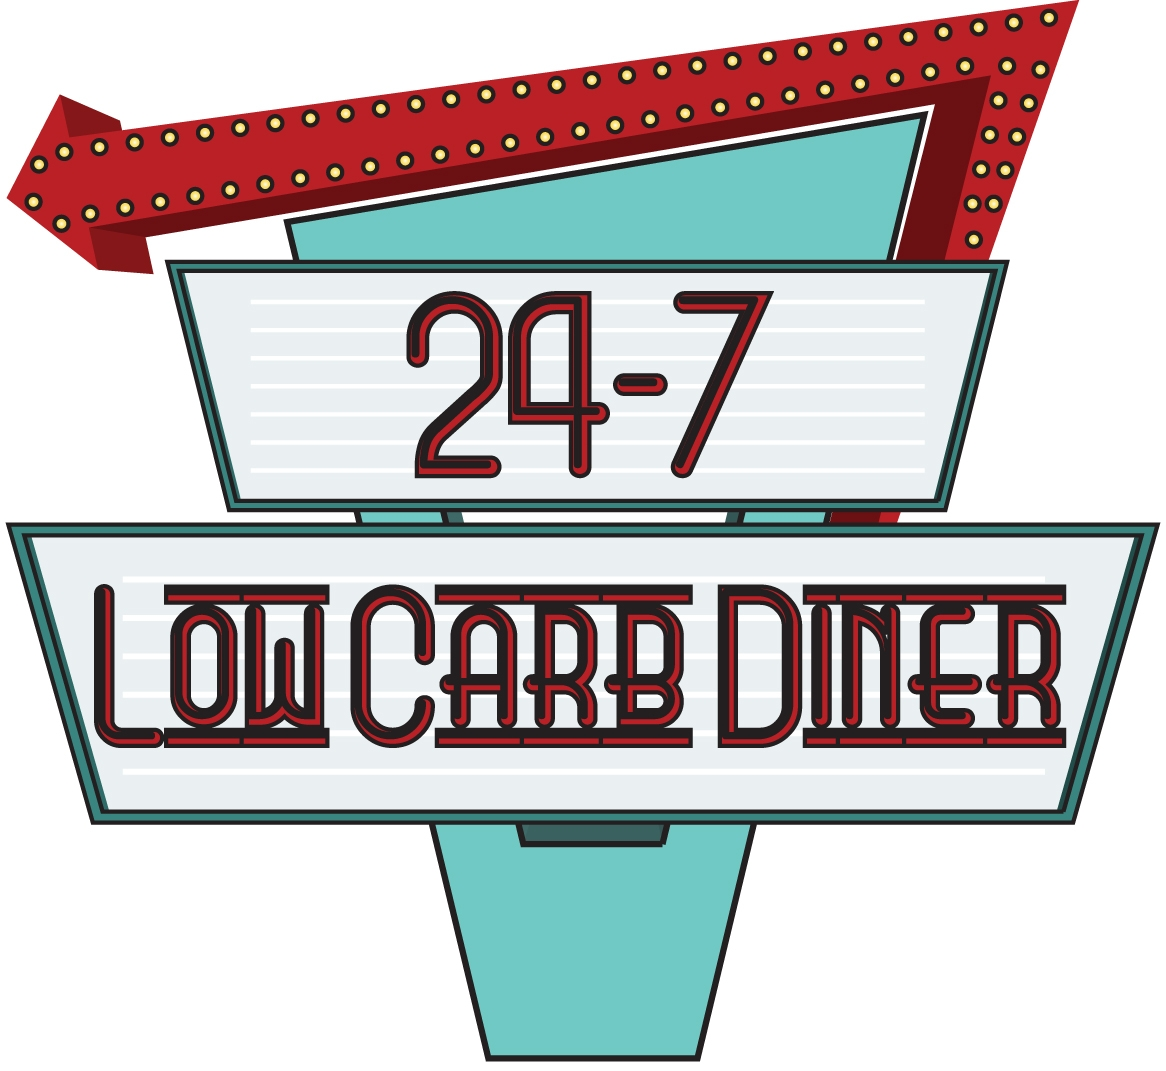 Diner clipart logo. Free cliparts download clip